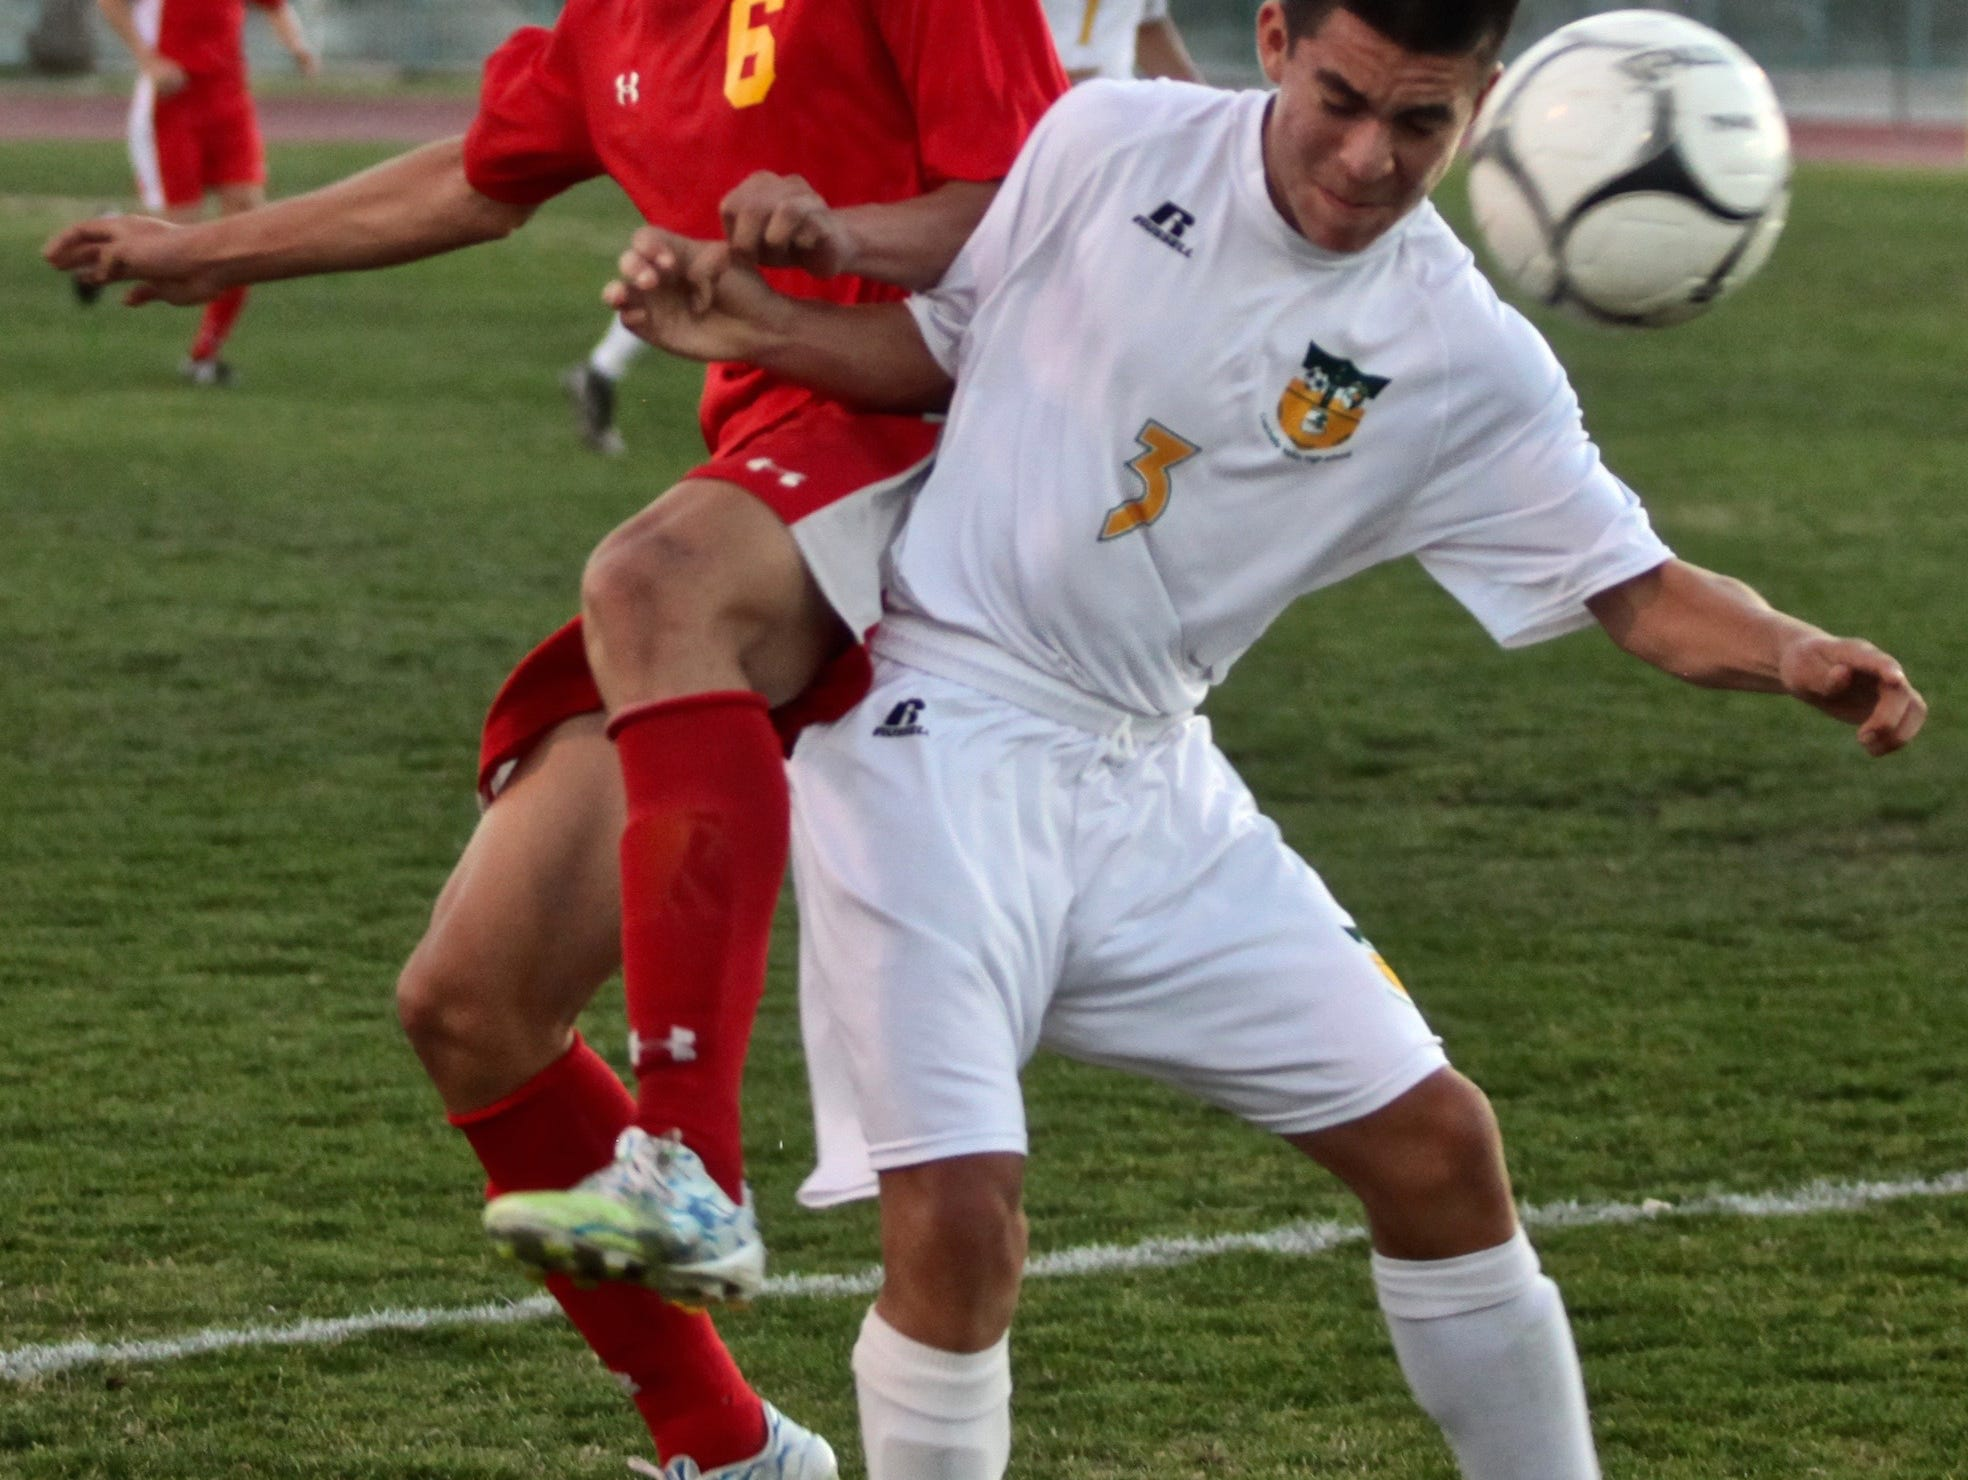 Palm Desert's Gerardo Serrano (6) and Coachella Valley's Oscar Cervantes (3) battle for the ball during a match in Thermal on Tuesday.